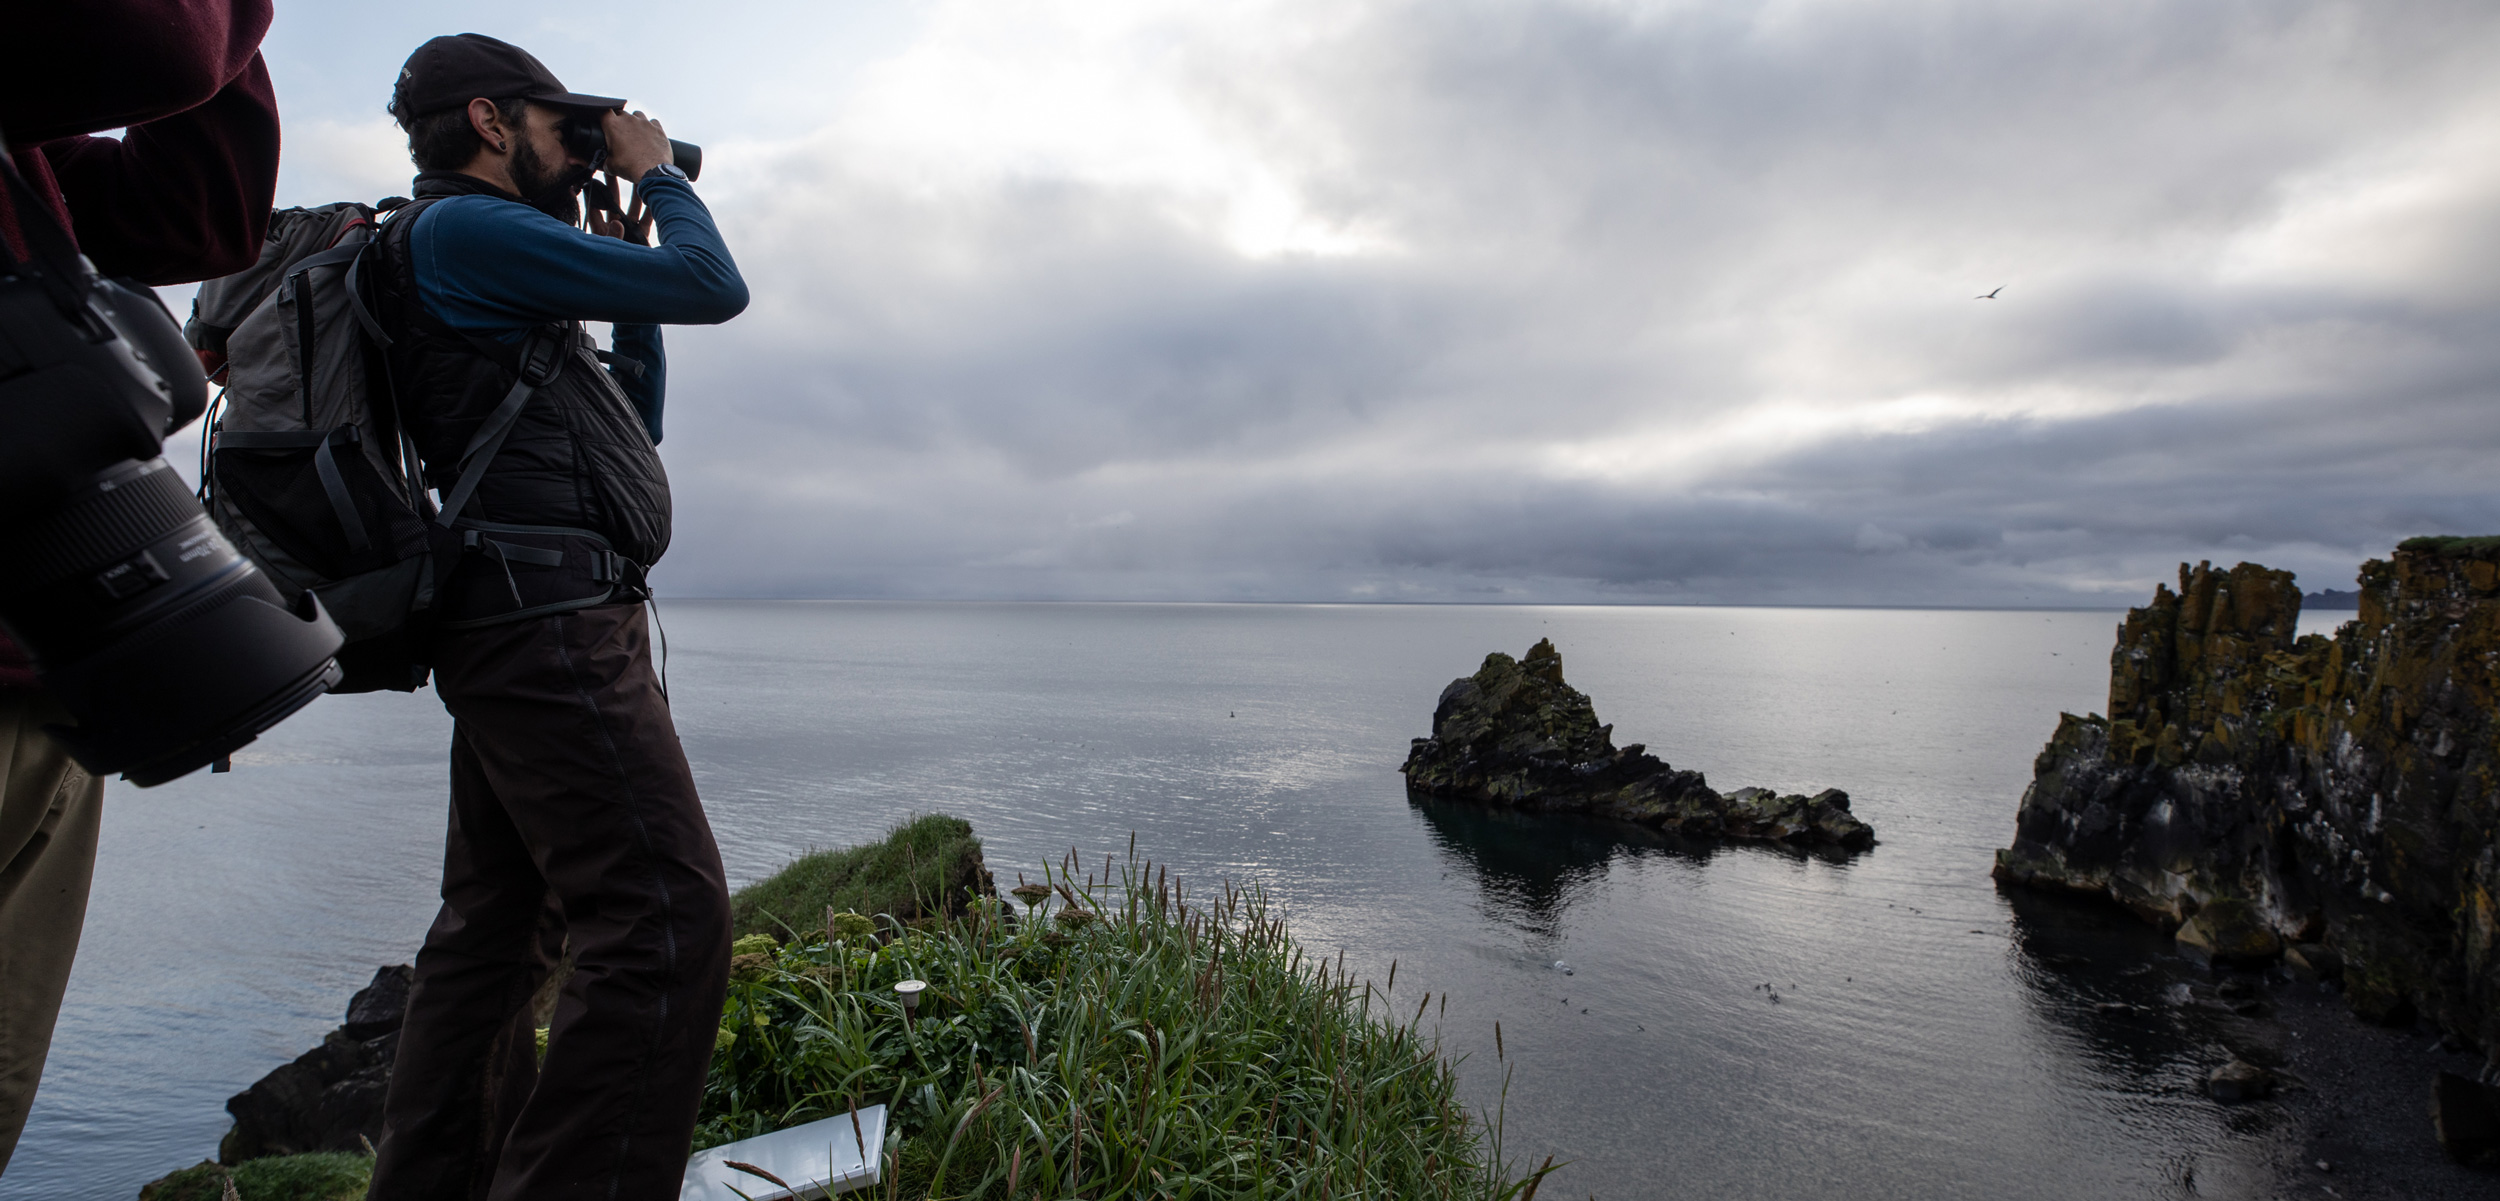 Marc Romano scans for seabirds near St. Matthew Island